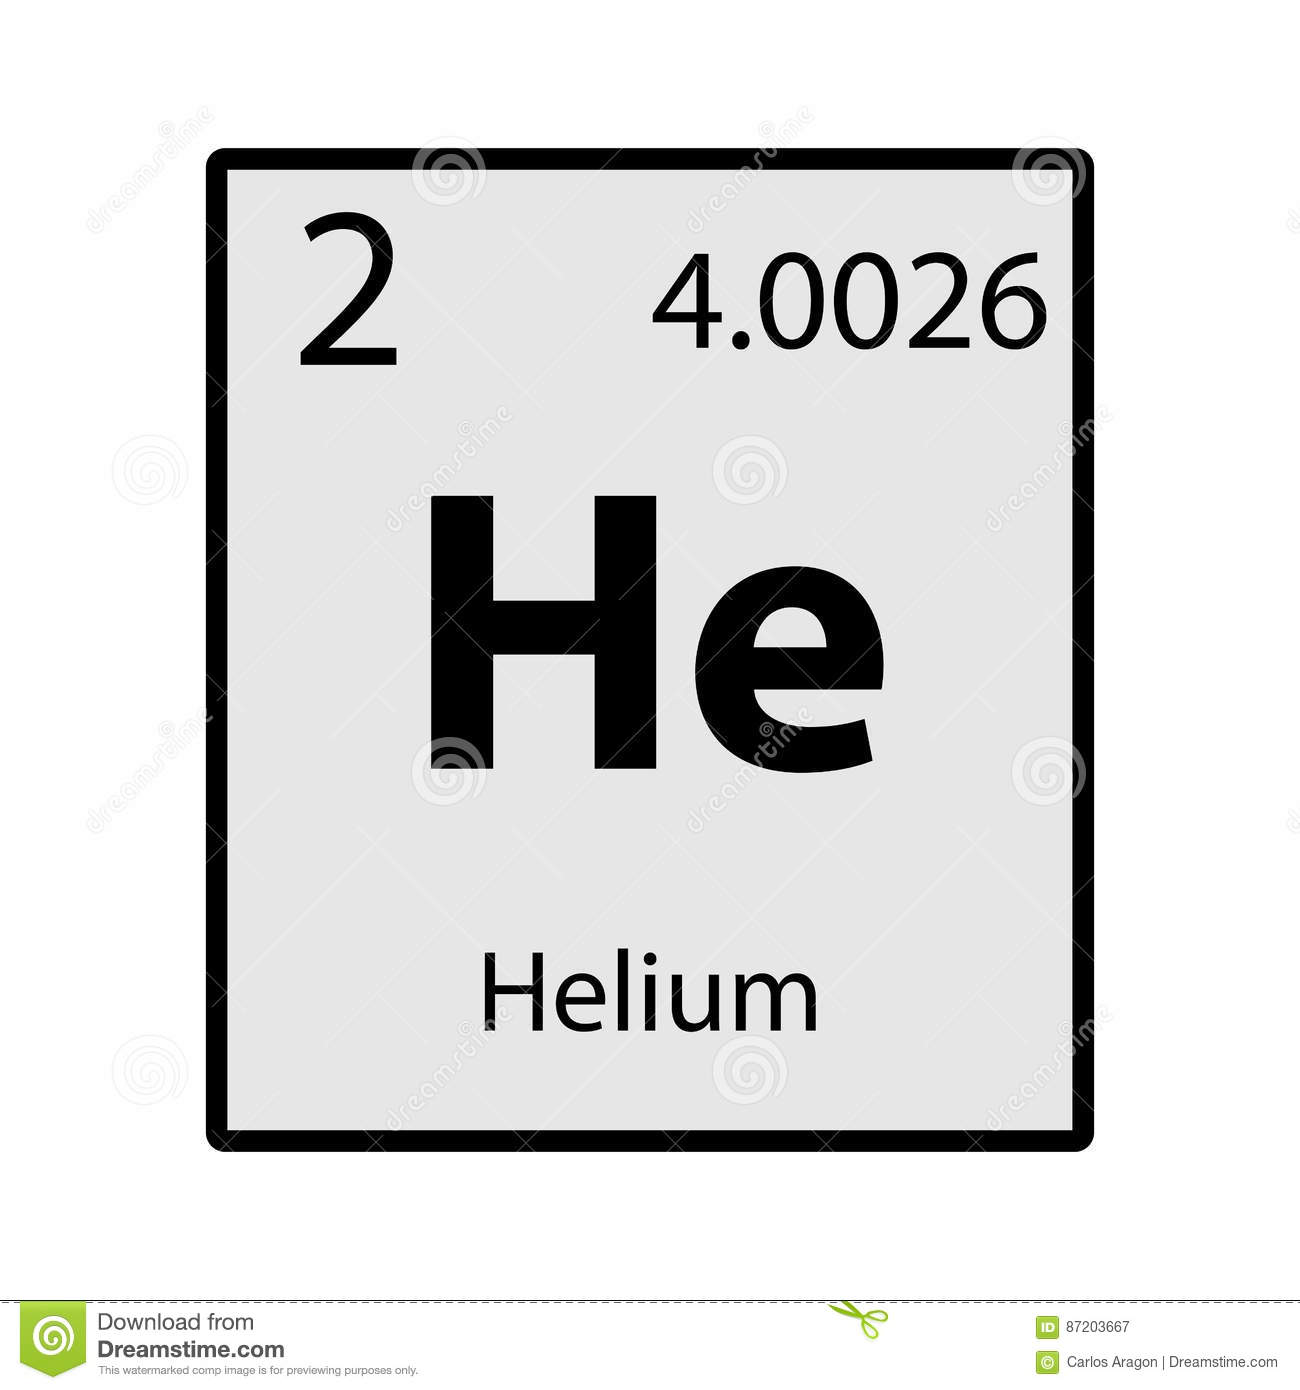 Helium periodic table element gray icon on white background stock download comp urtaz Image collections